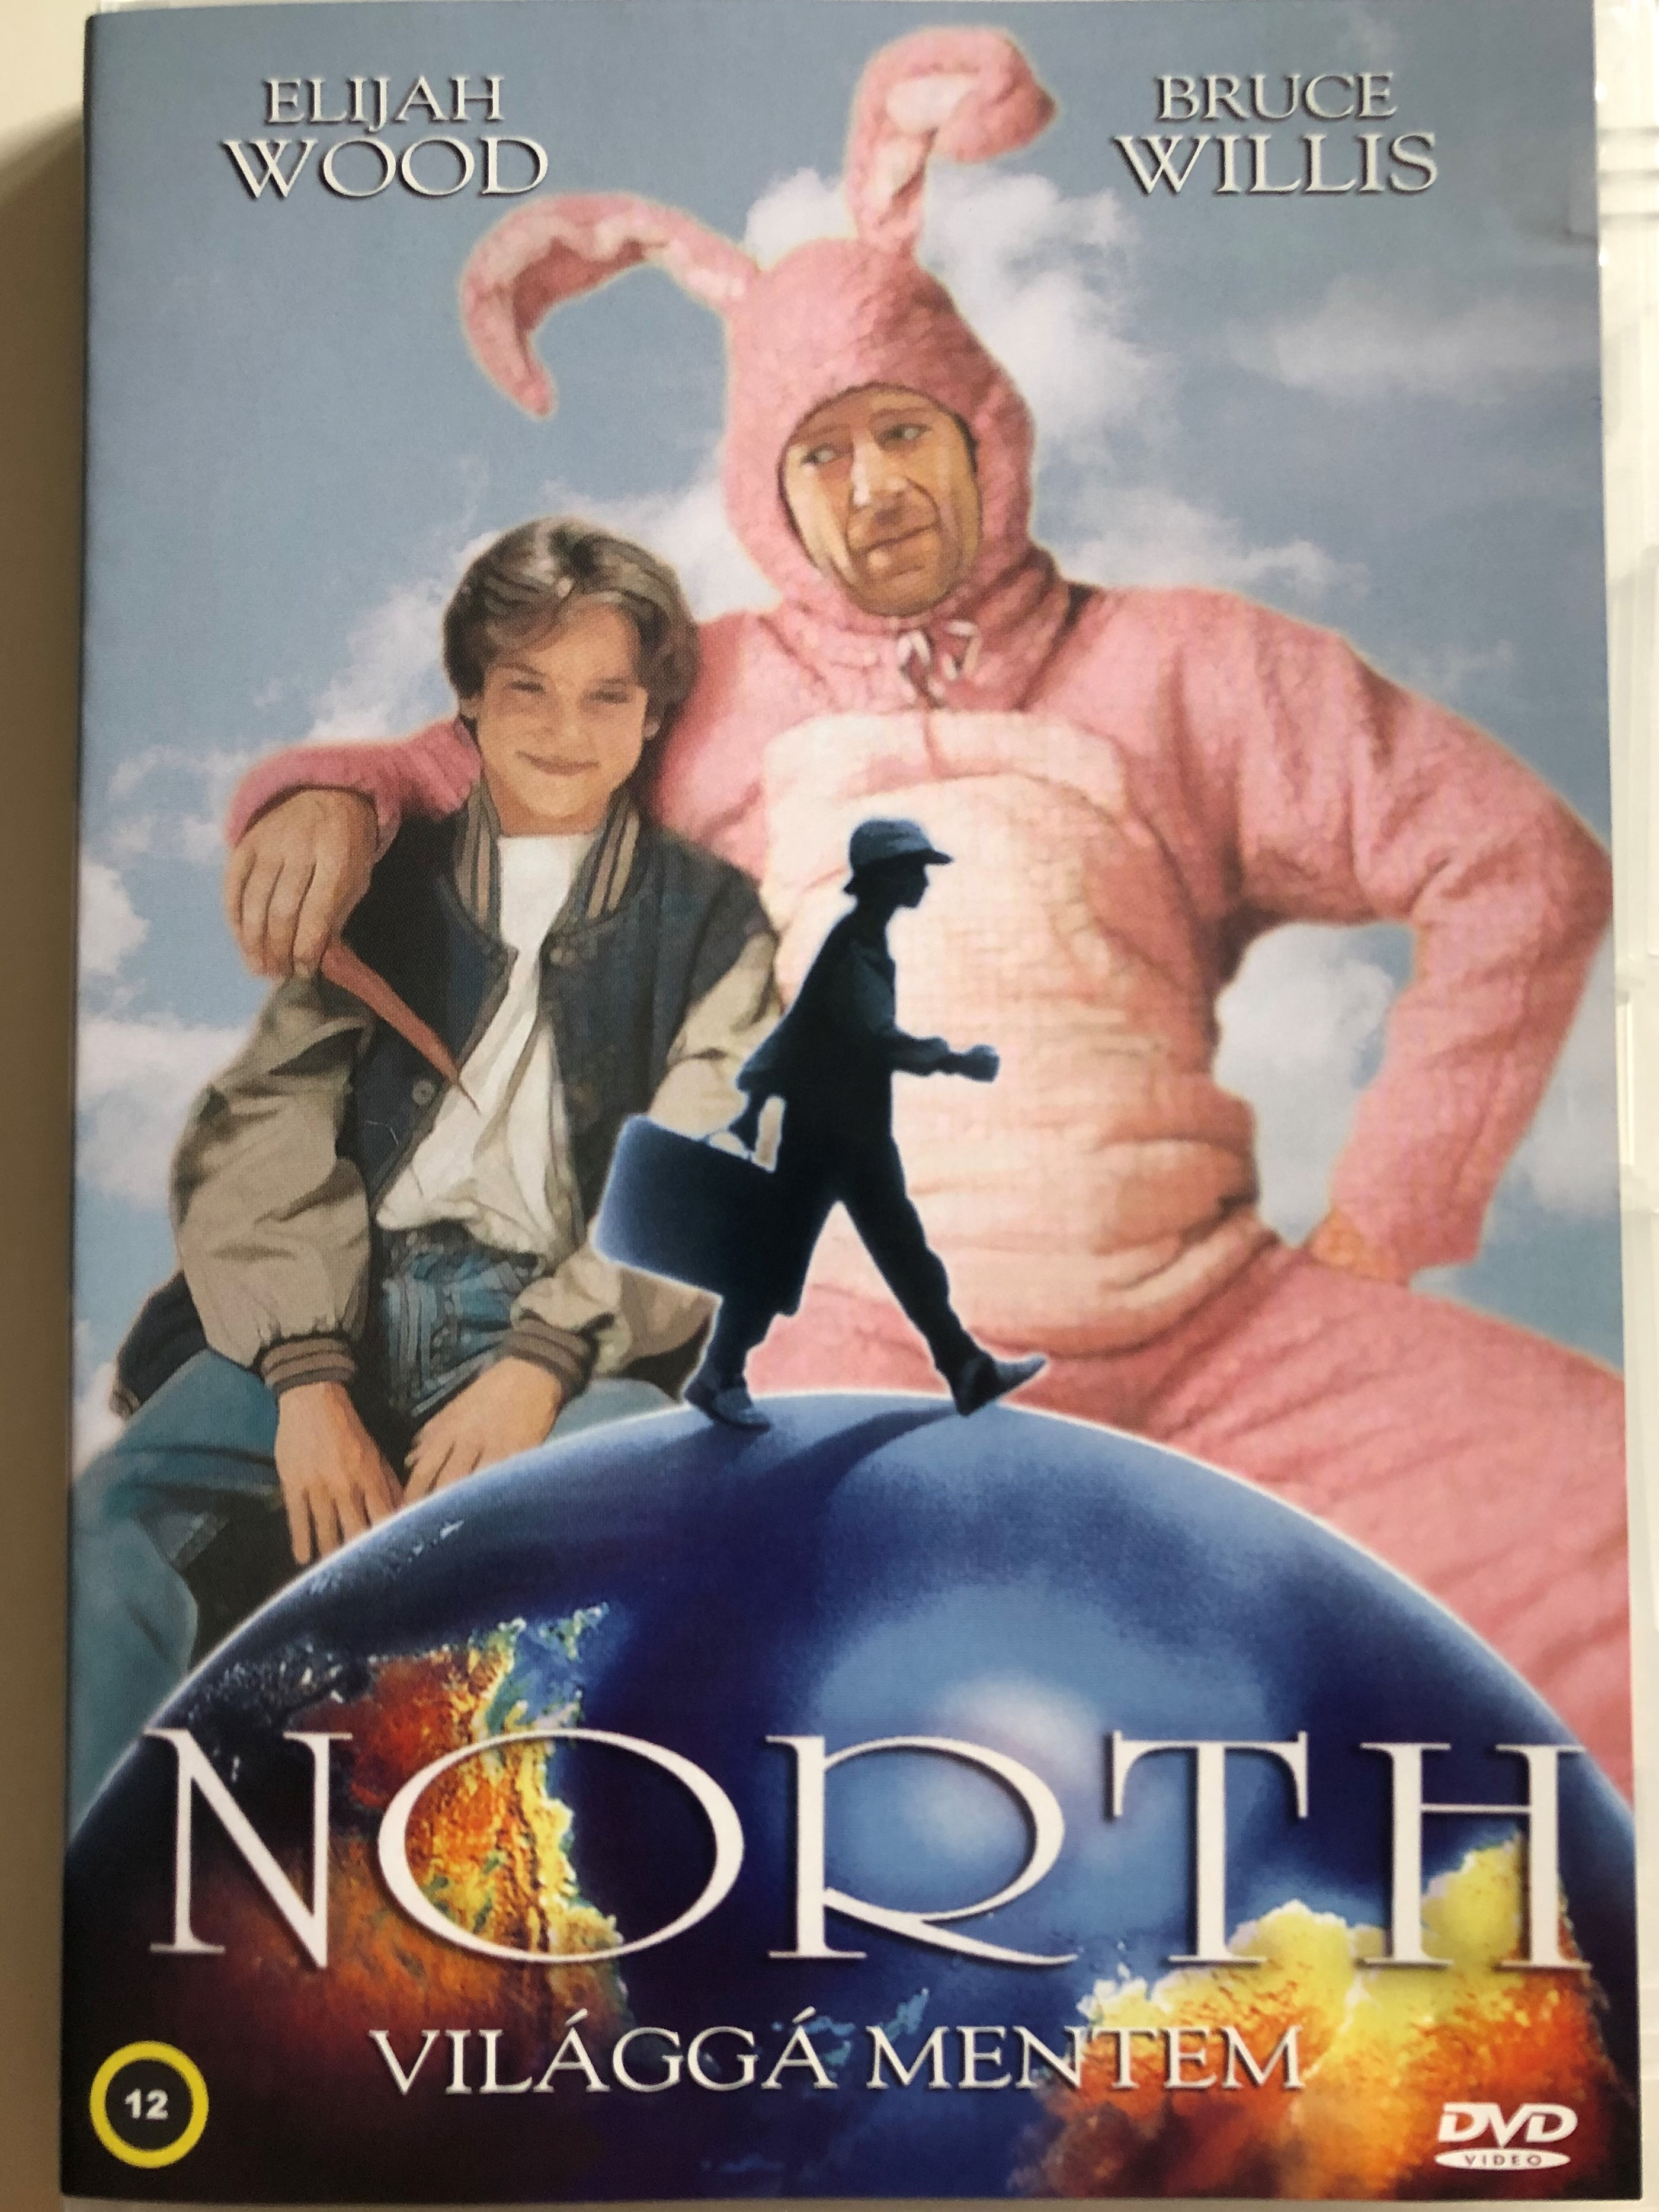 north-dvd-1994-vil-gg-mentem-directed-by-rob-reiner-starring-elijah-wood-bruce-willis-dan-aykroyd-jon-lovitz-1-.jpg